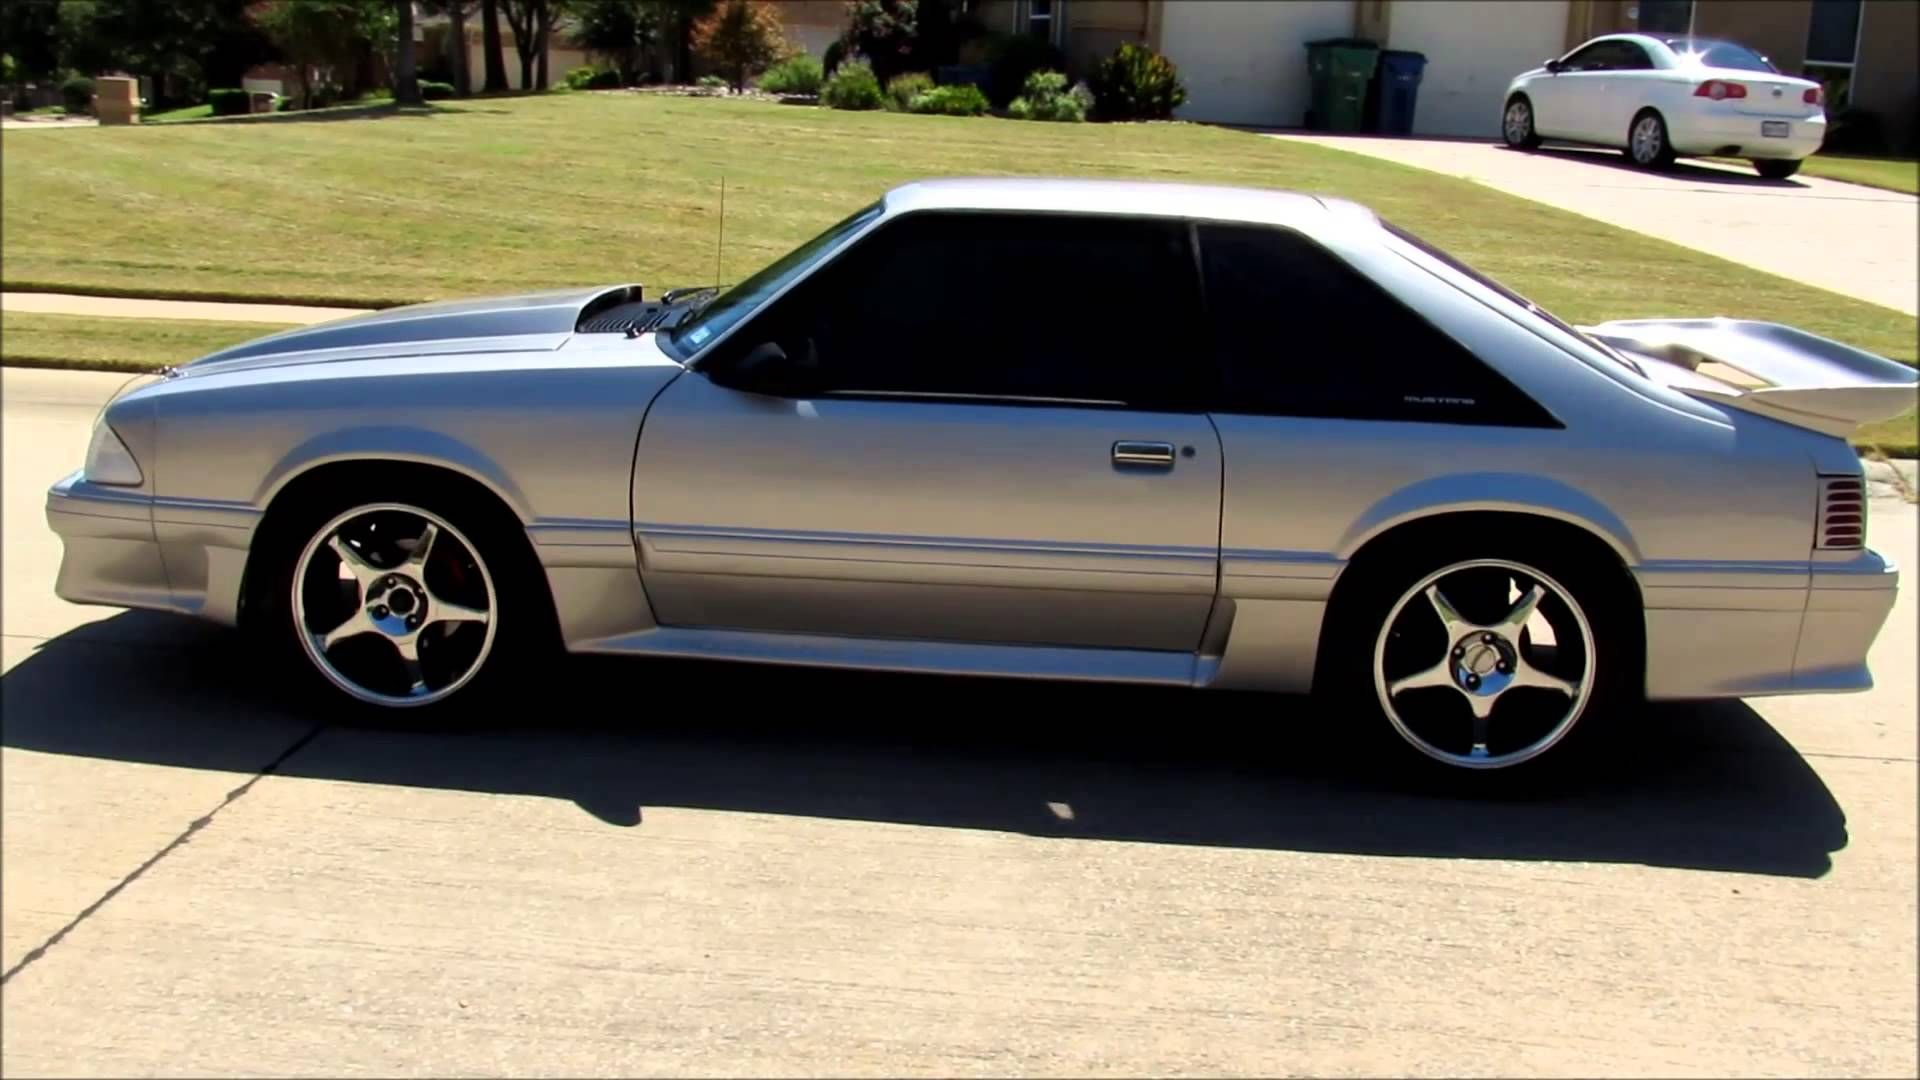 1991 ford mustang gt 5 0 ho 302 ford mustang gt automatic transmission american muscle